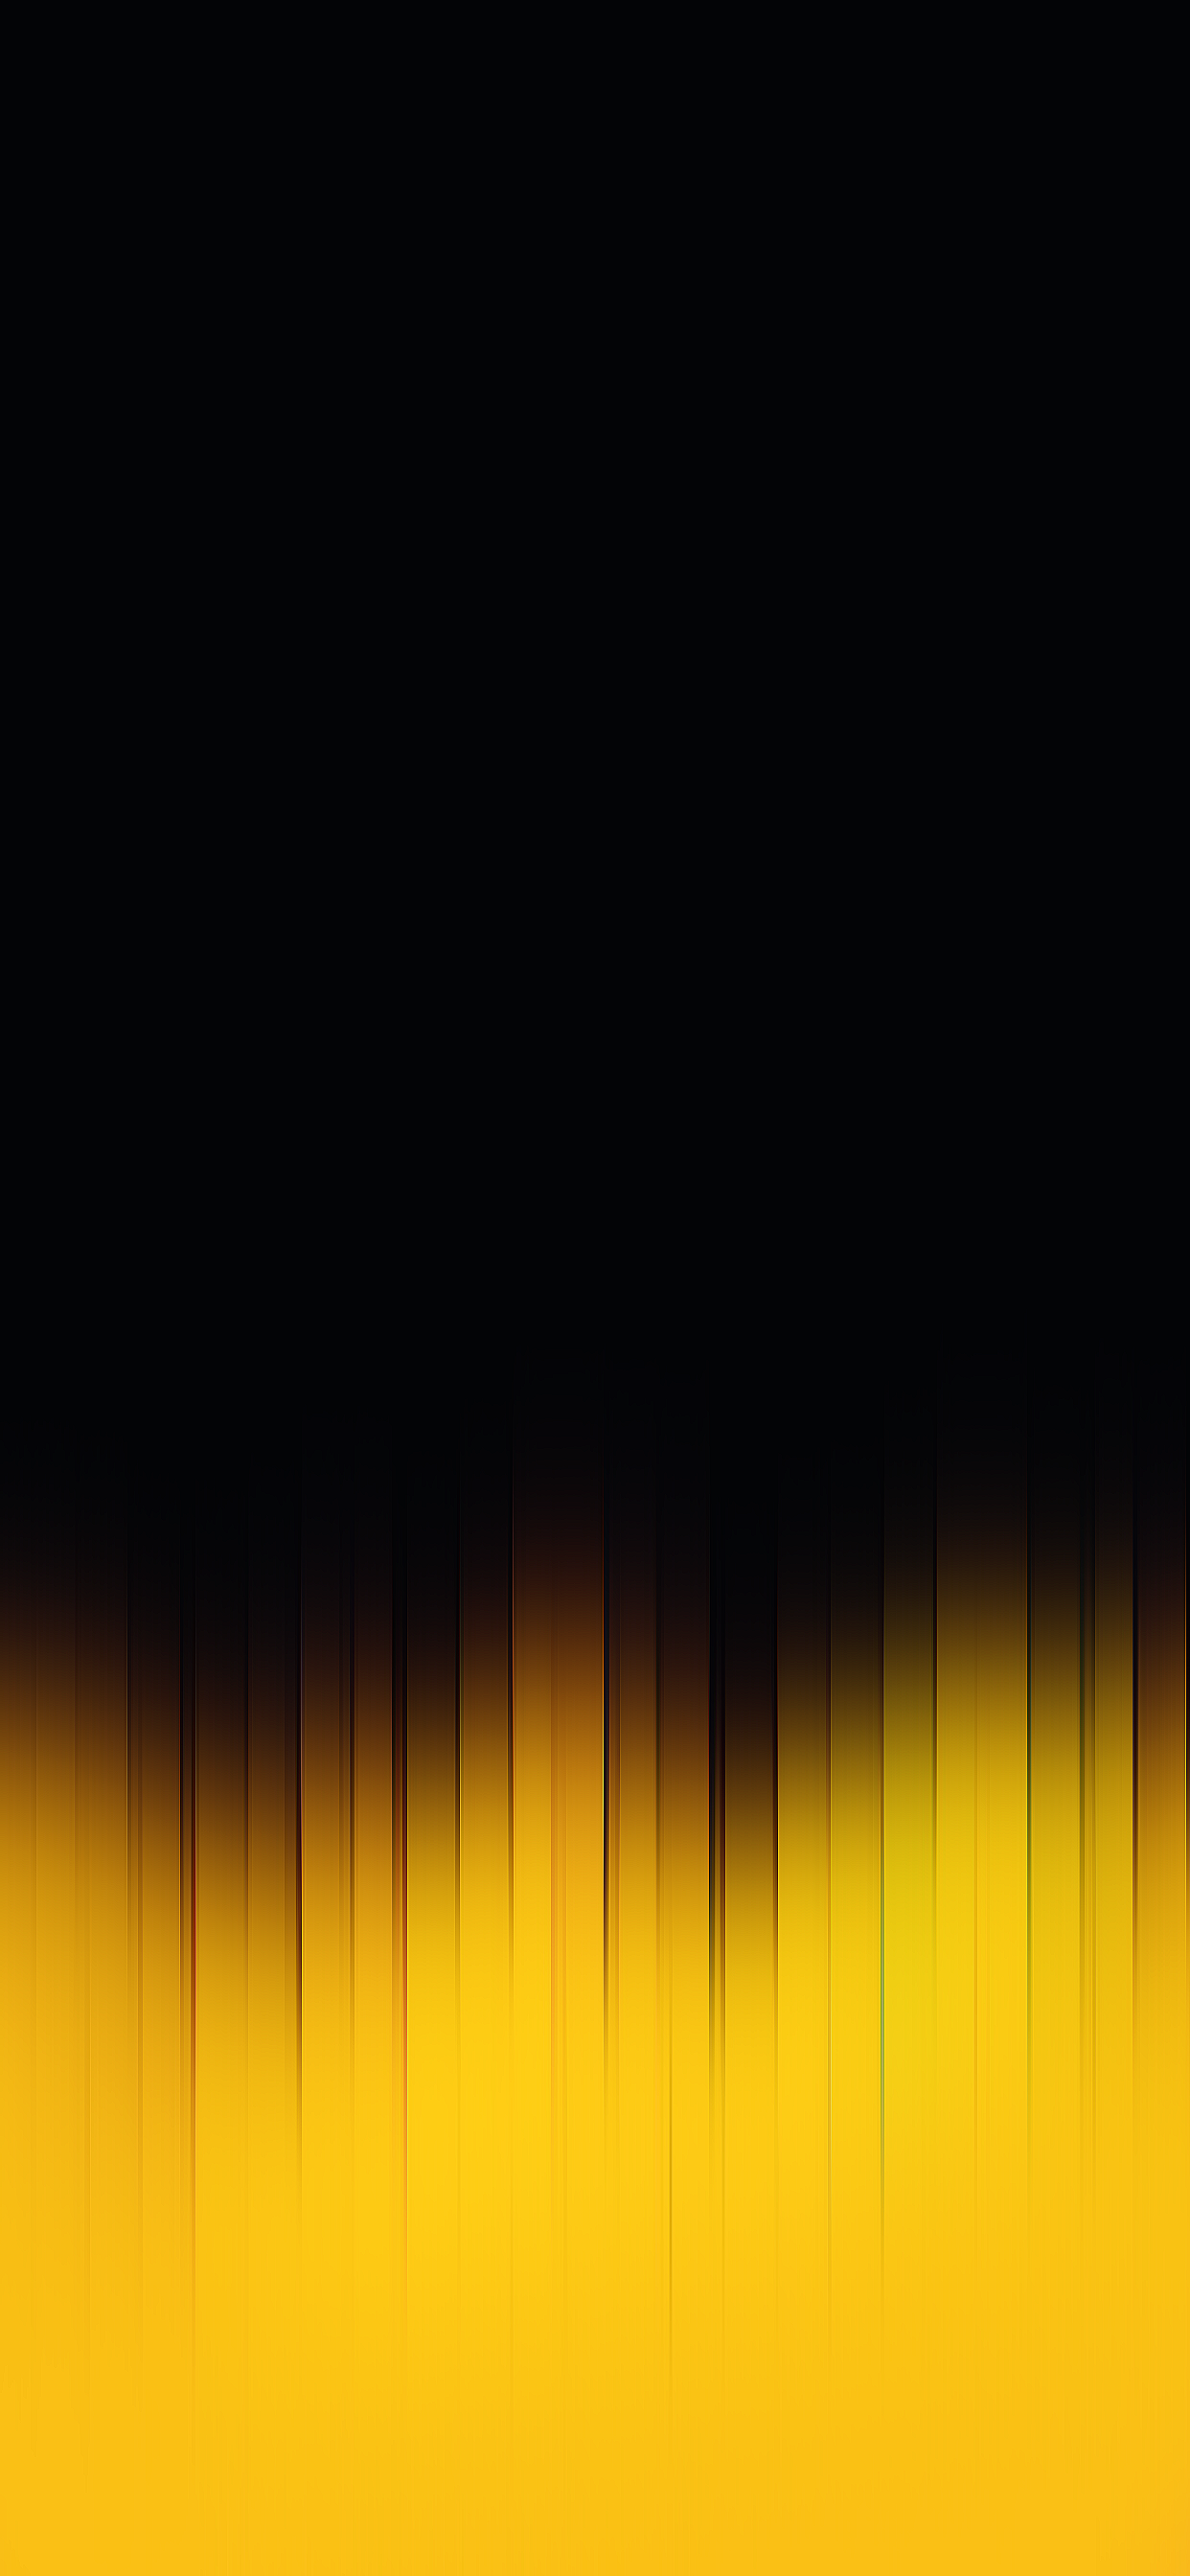 iPhone wallpaper abstract Yellow Fonds d'écran iPhone du 20/12/2018